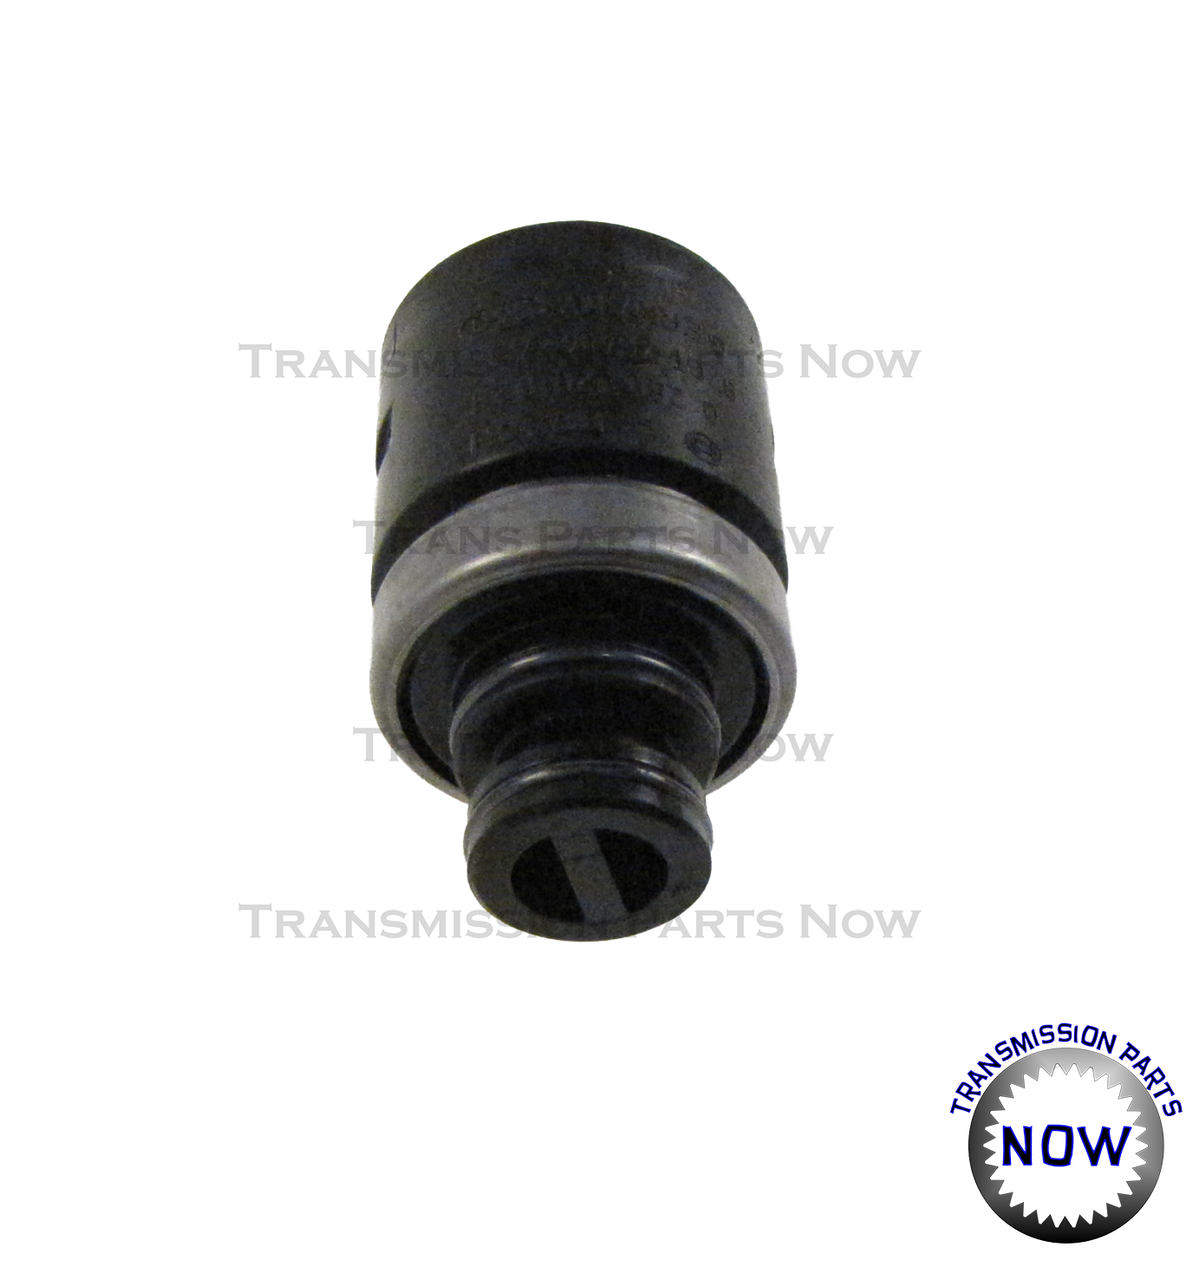 Shift Coast Clutch Solenoid 4r55e 5r55e 95 Up Transmission Parts Now 4r70wclutches Clutch Ford Parts Shift